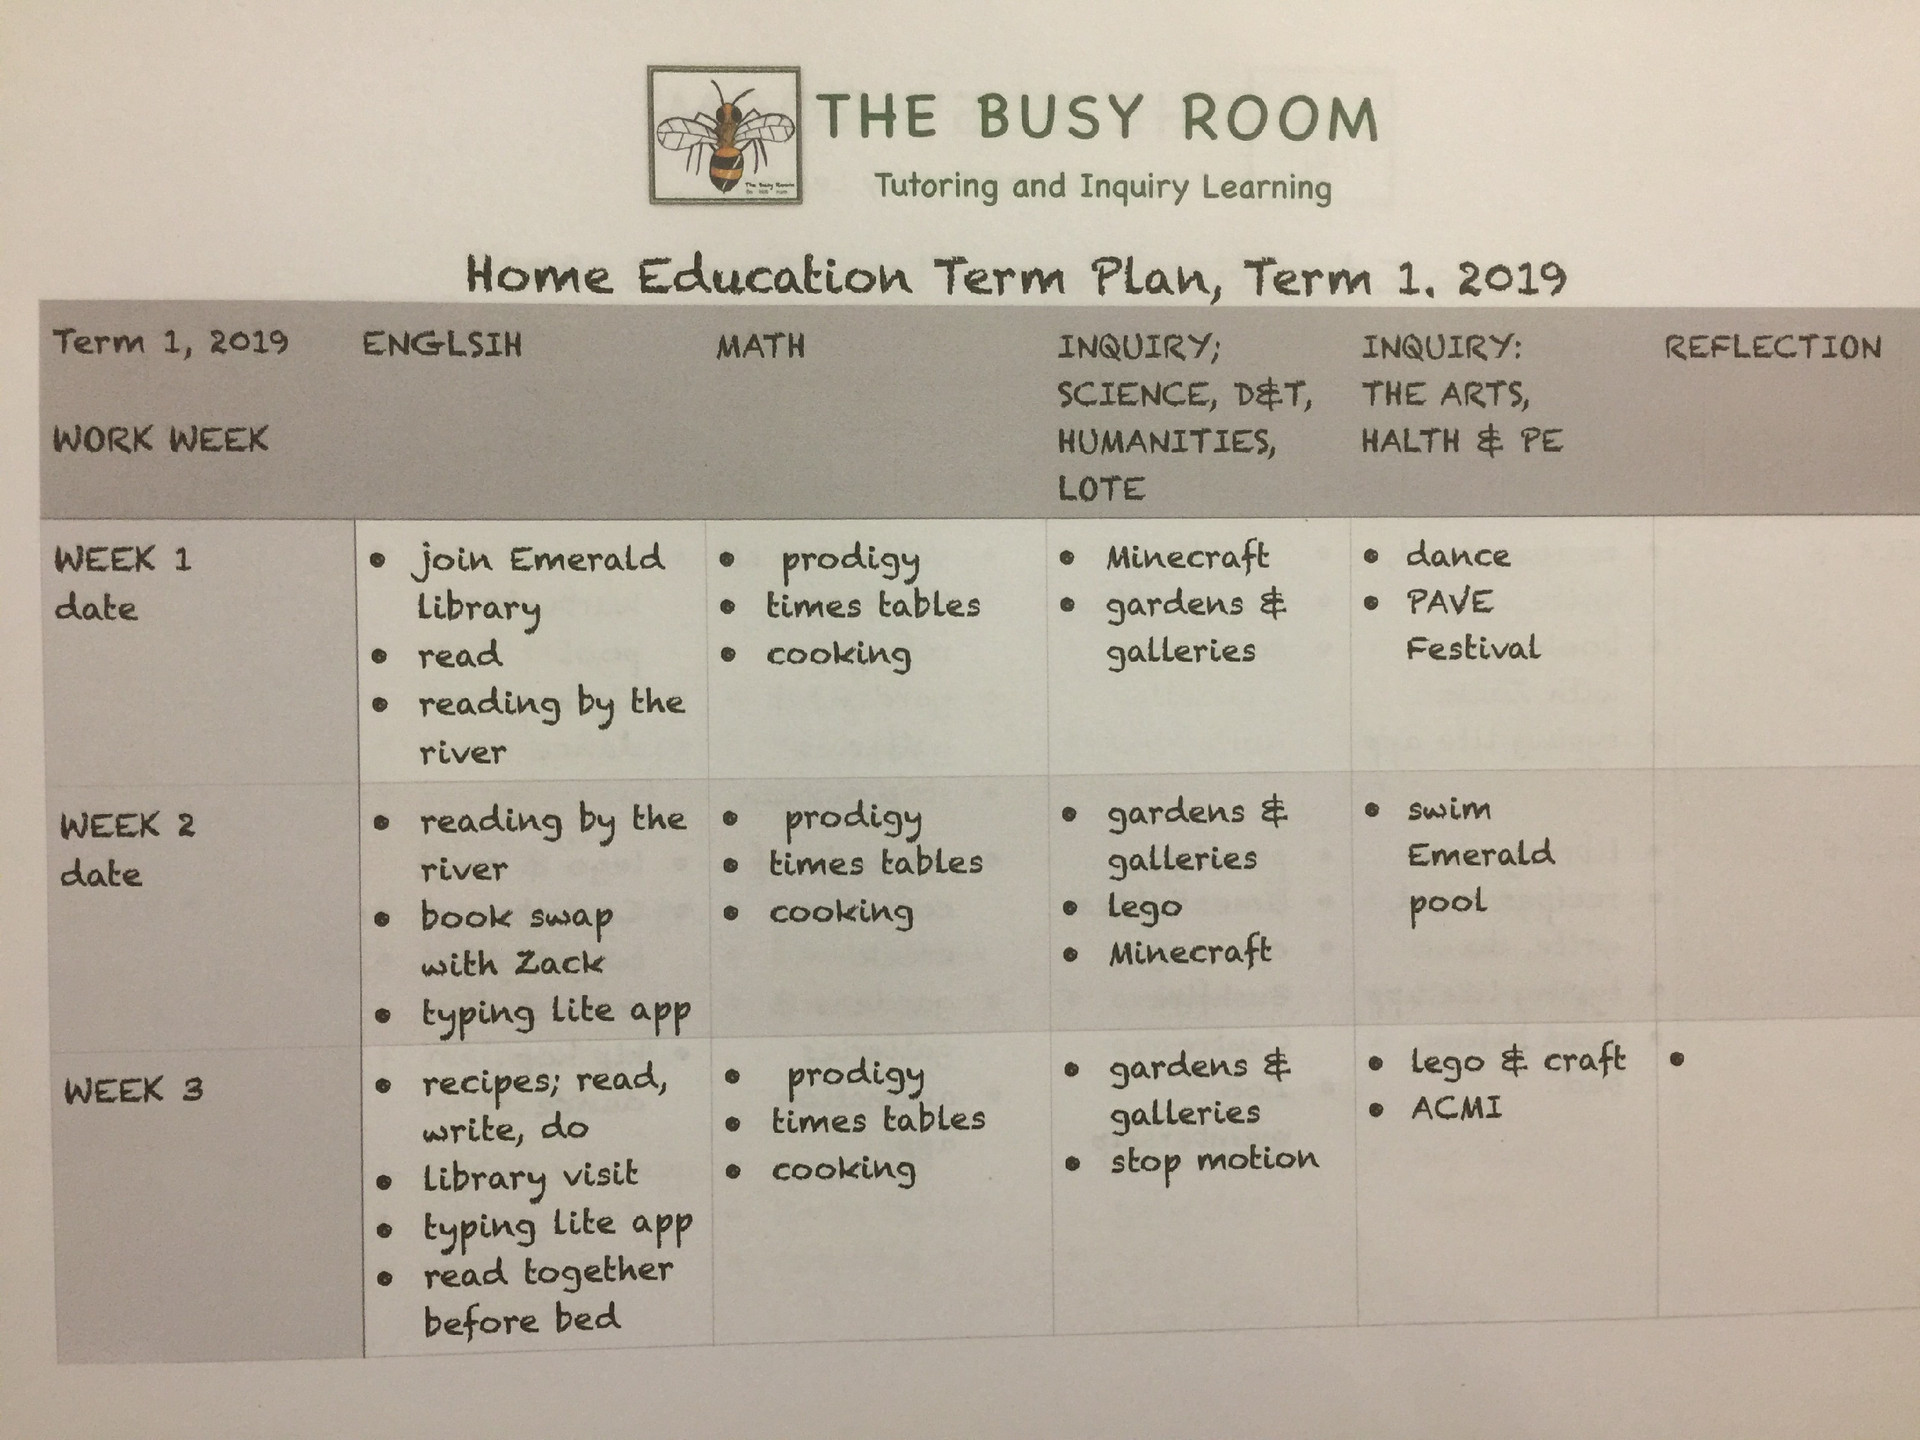 Home Education Term Plan